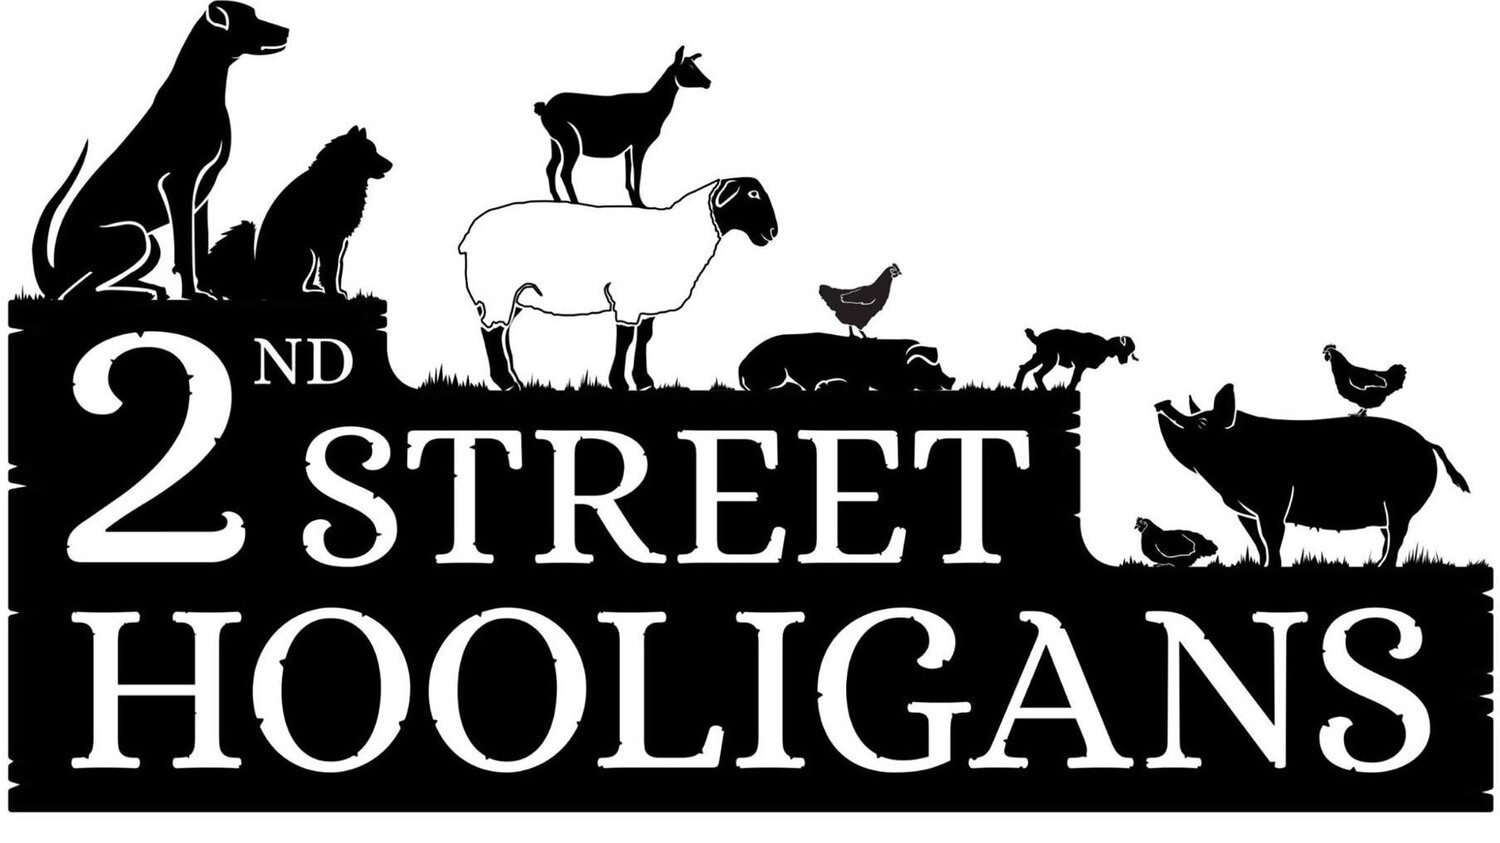 2nd Street Hooligans Rescue